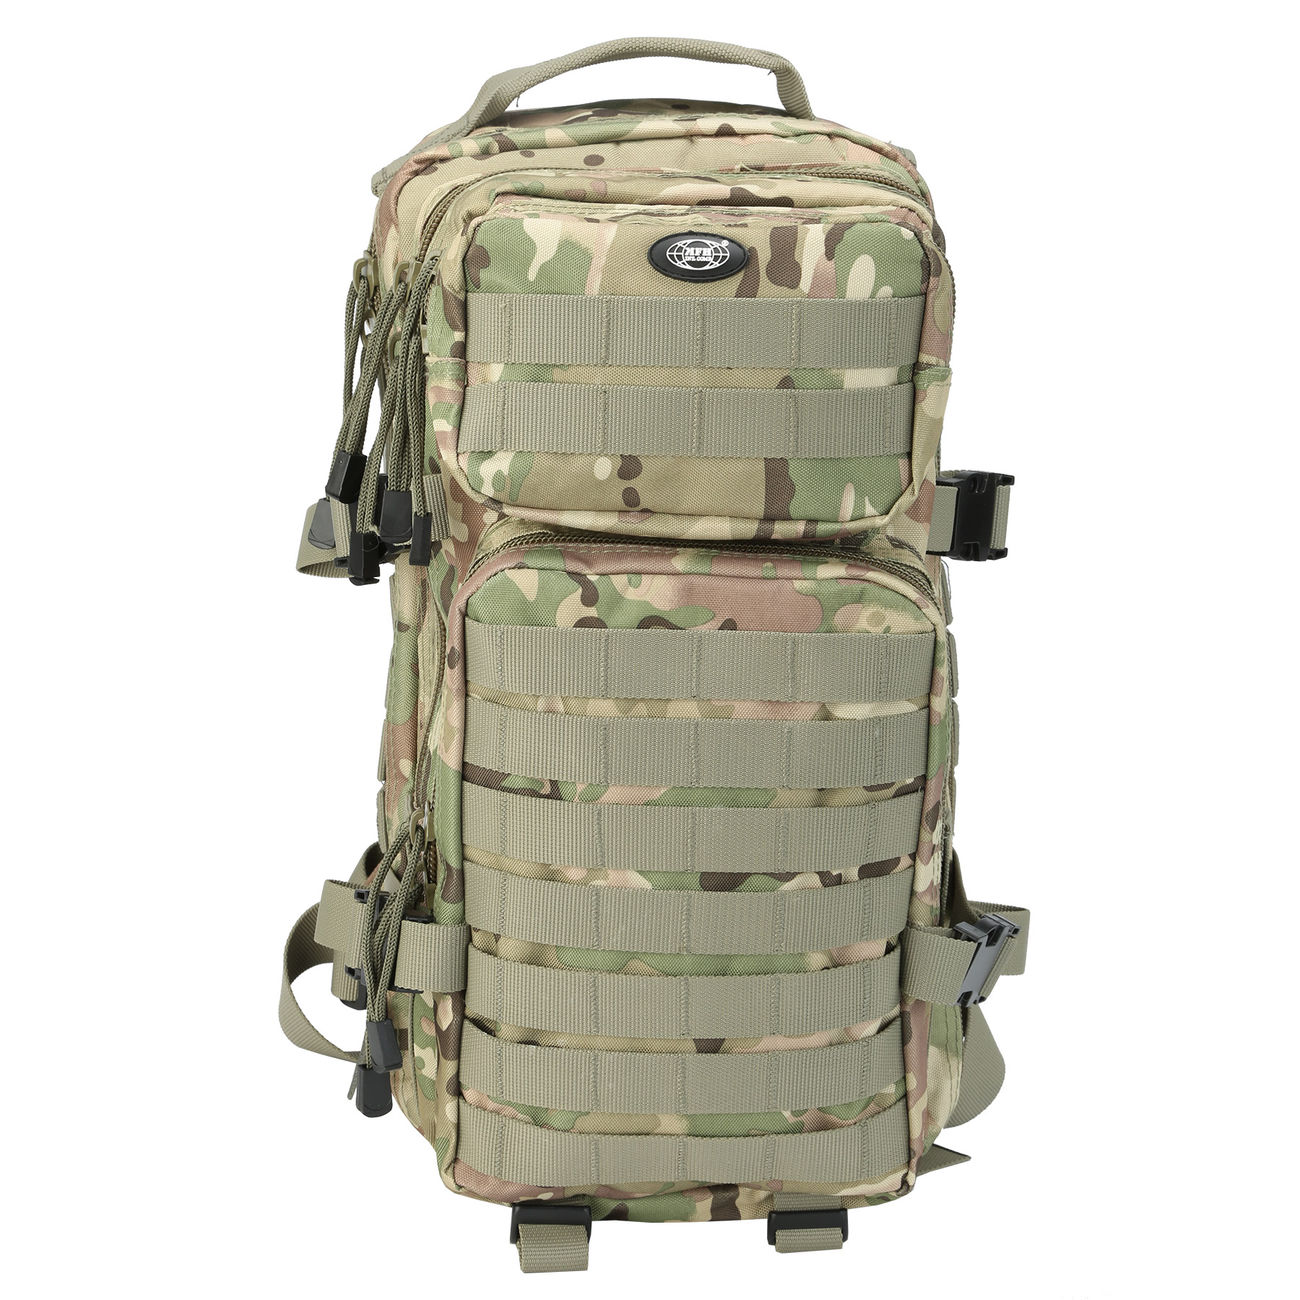 MFH Rucksack Assault I operation camo 6